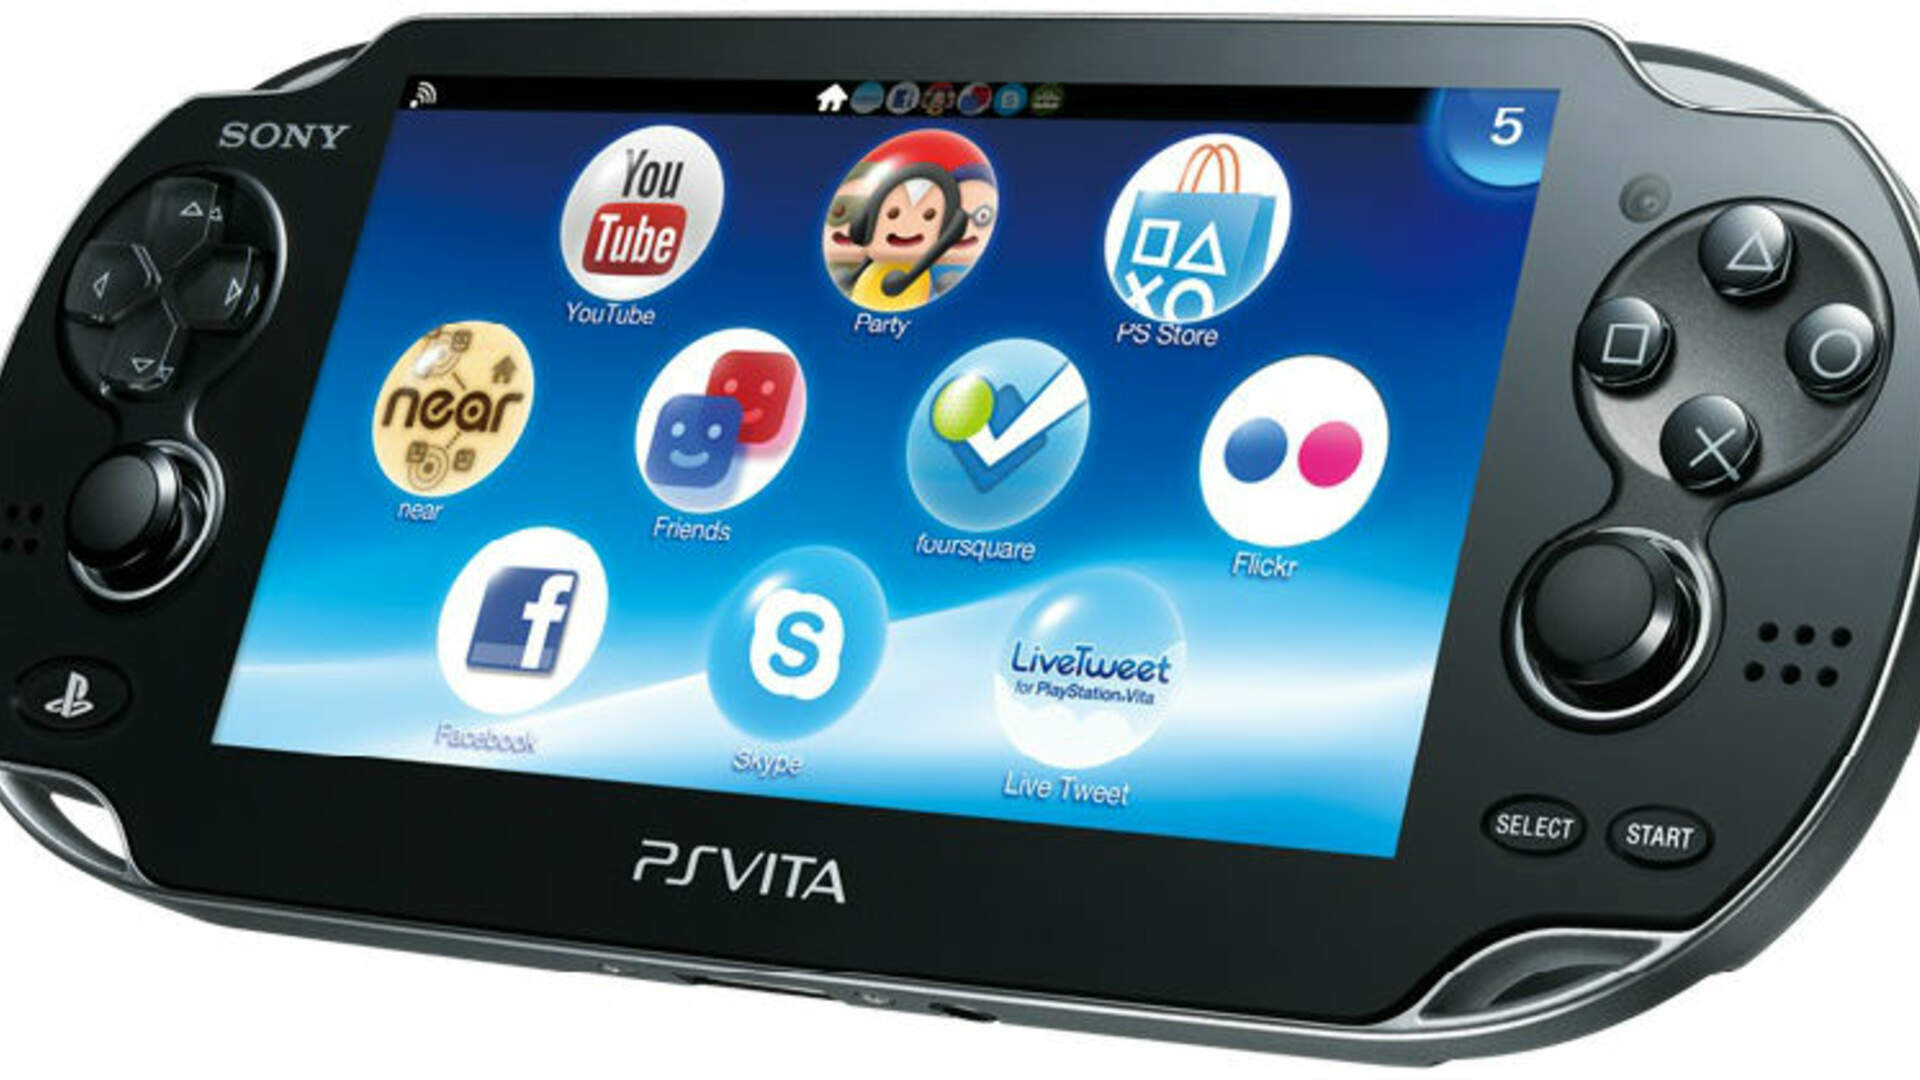 Sony Doesn't Really Like Talking About the Vita